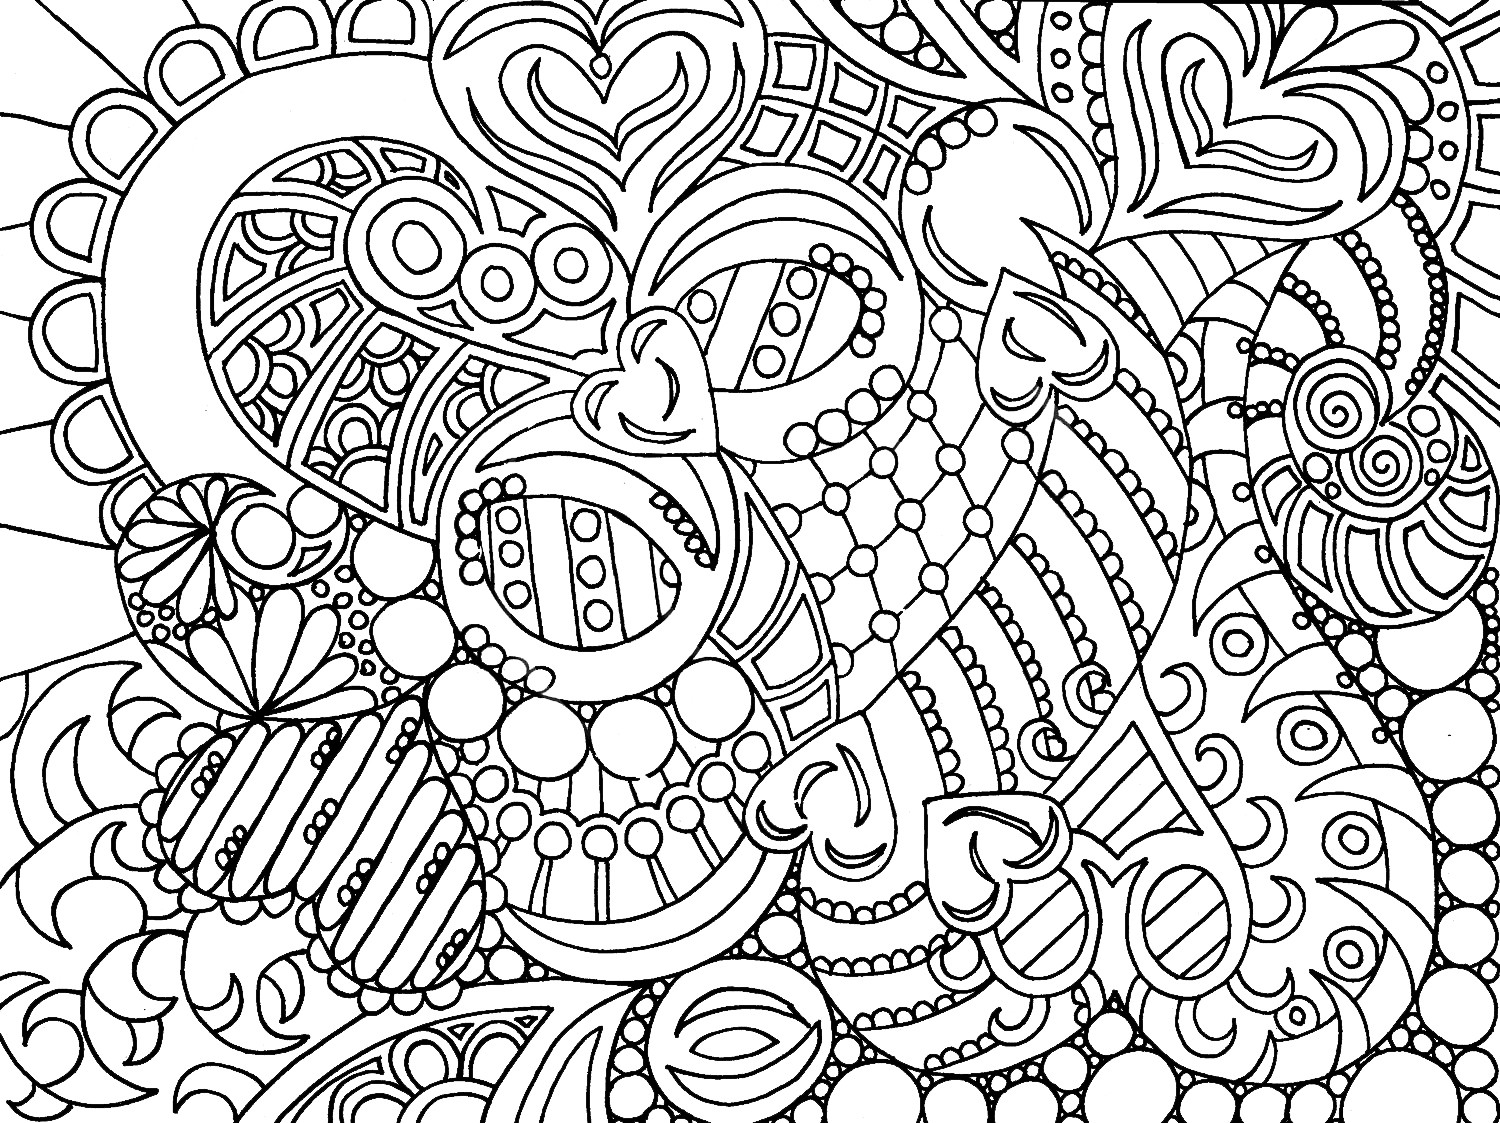 Best ideas about Printable Coloring Pages For Adults Free . Save or Pin free coloring pages for adults Now.